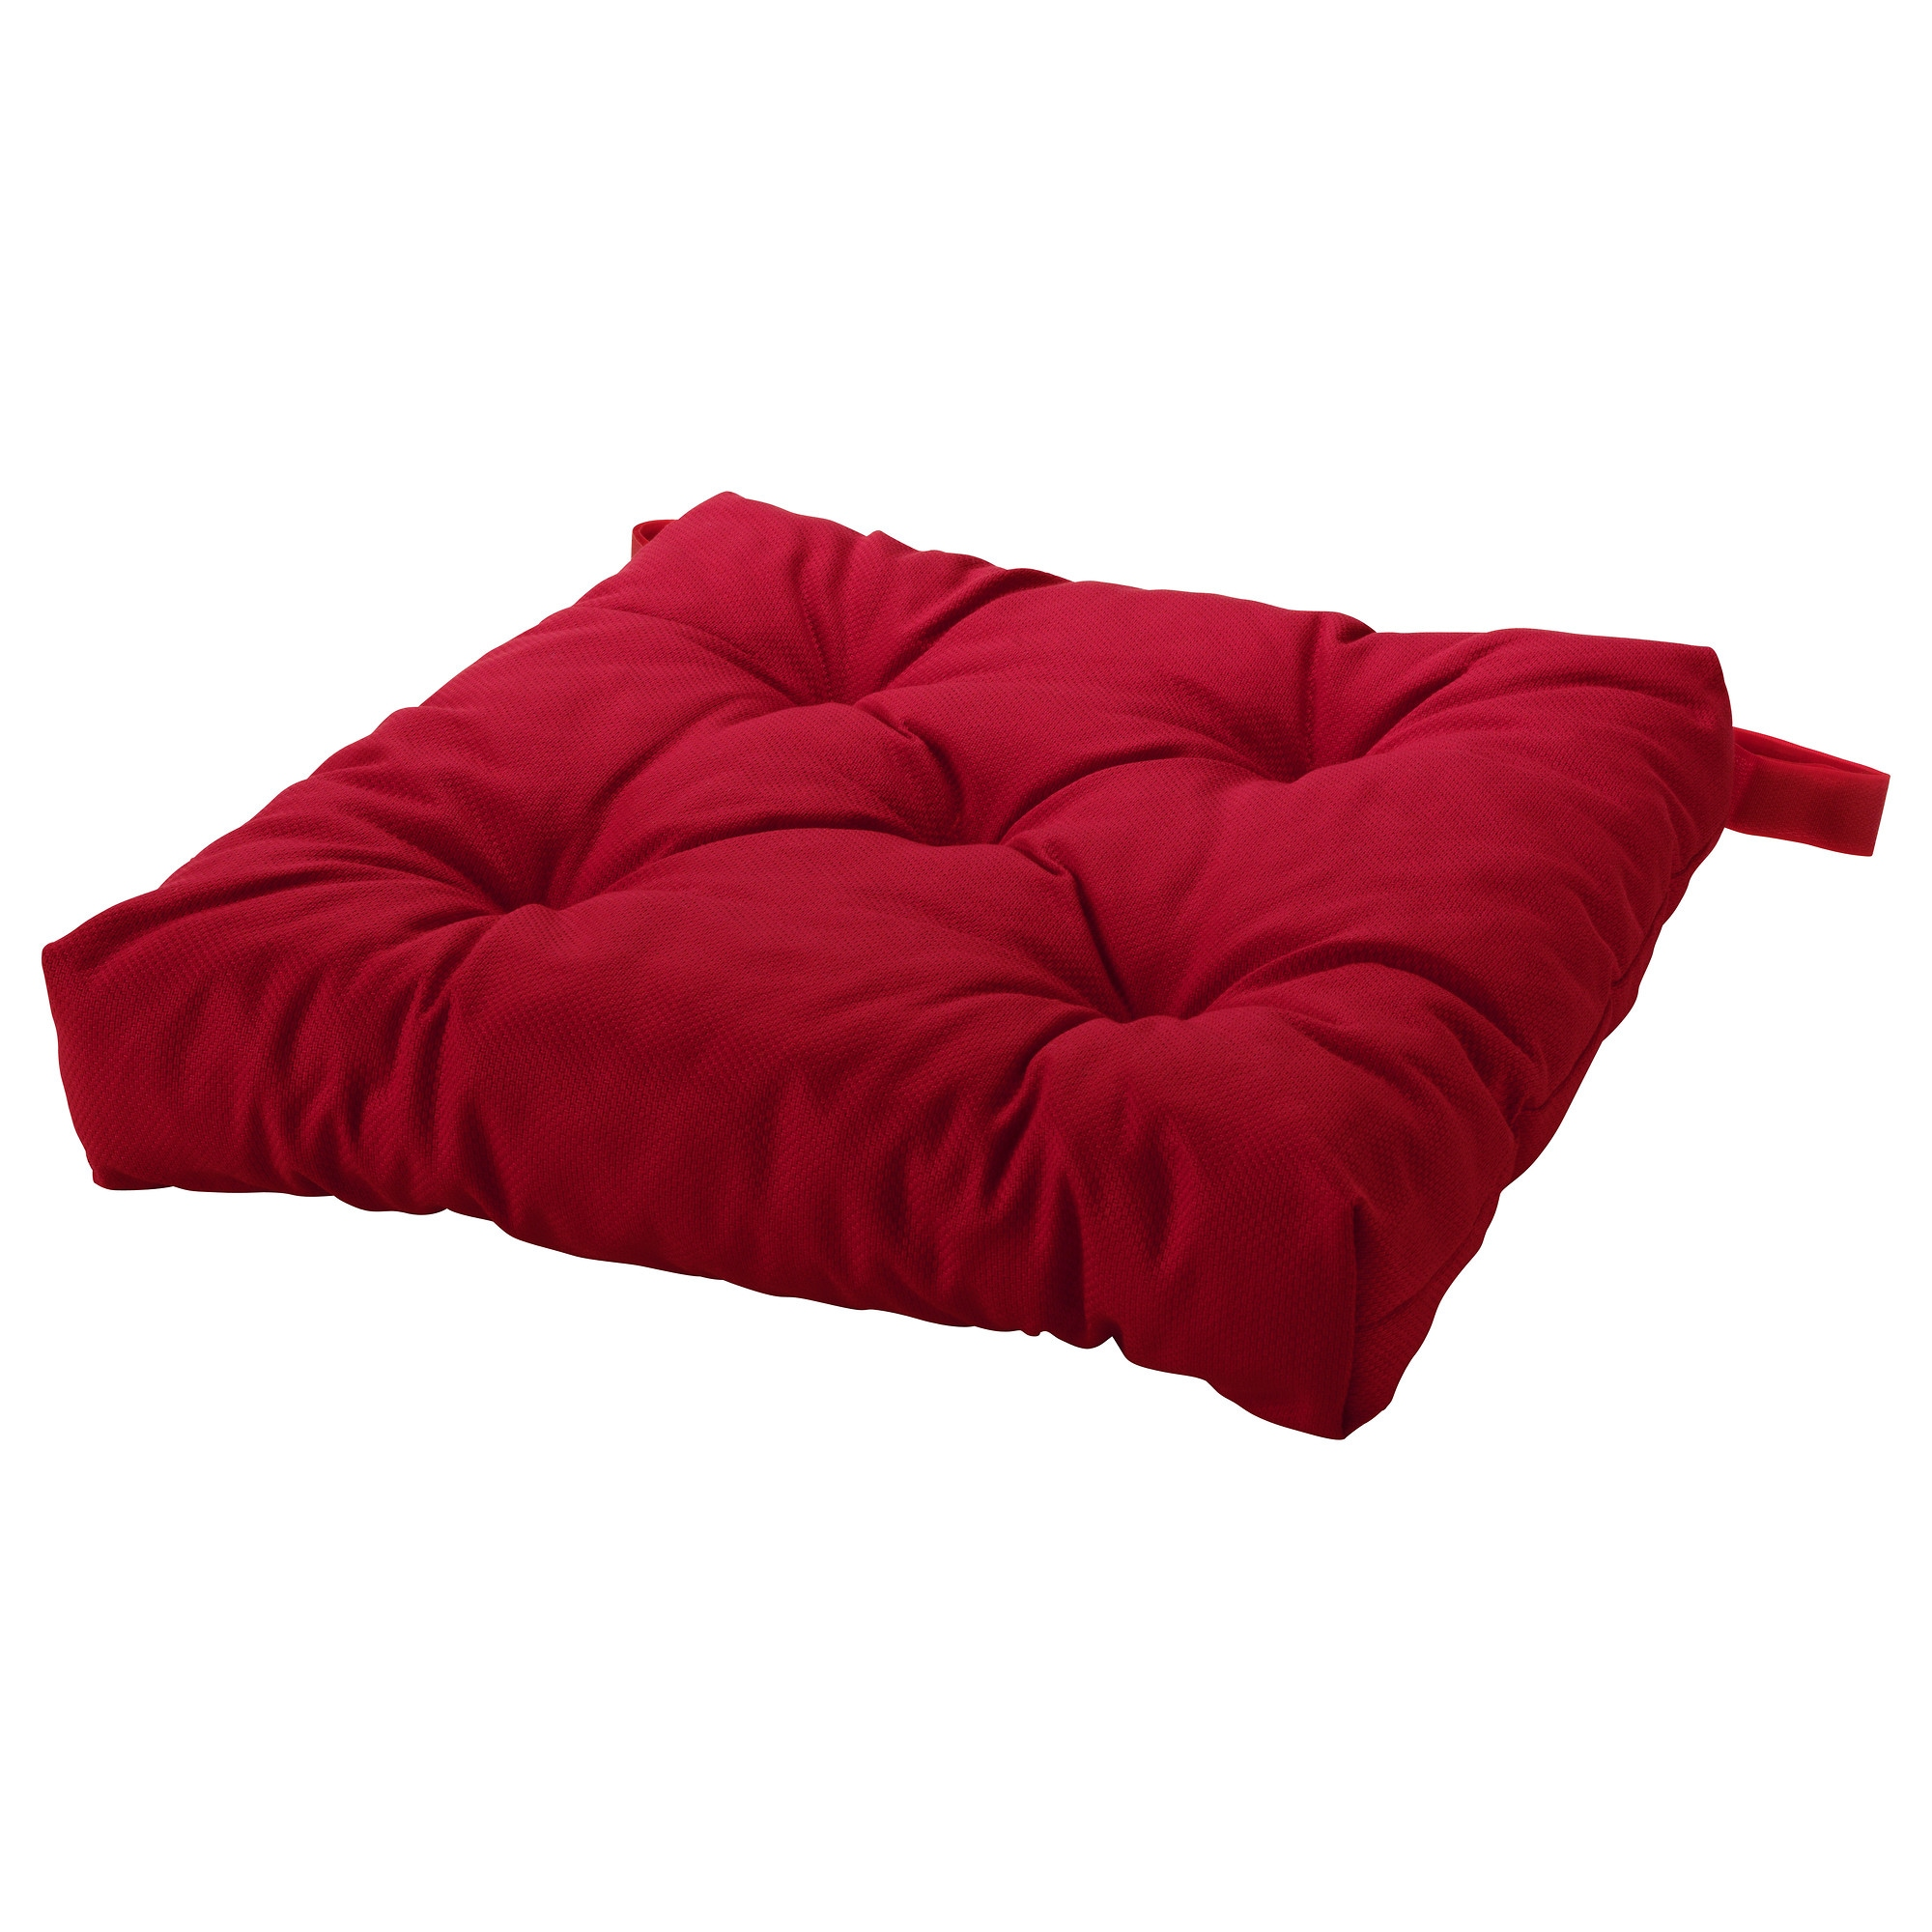 MALINDA Chair cushion red IKEA